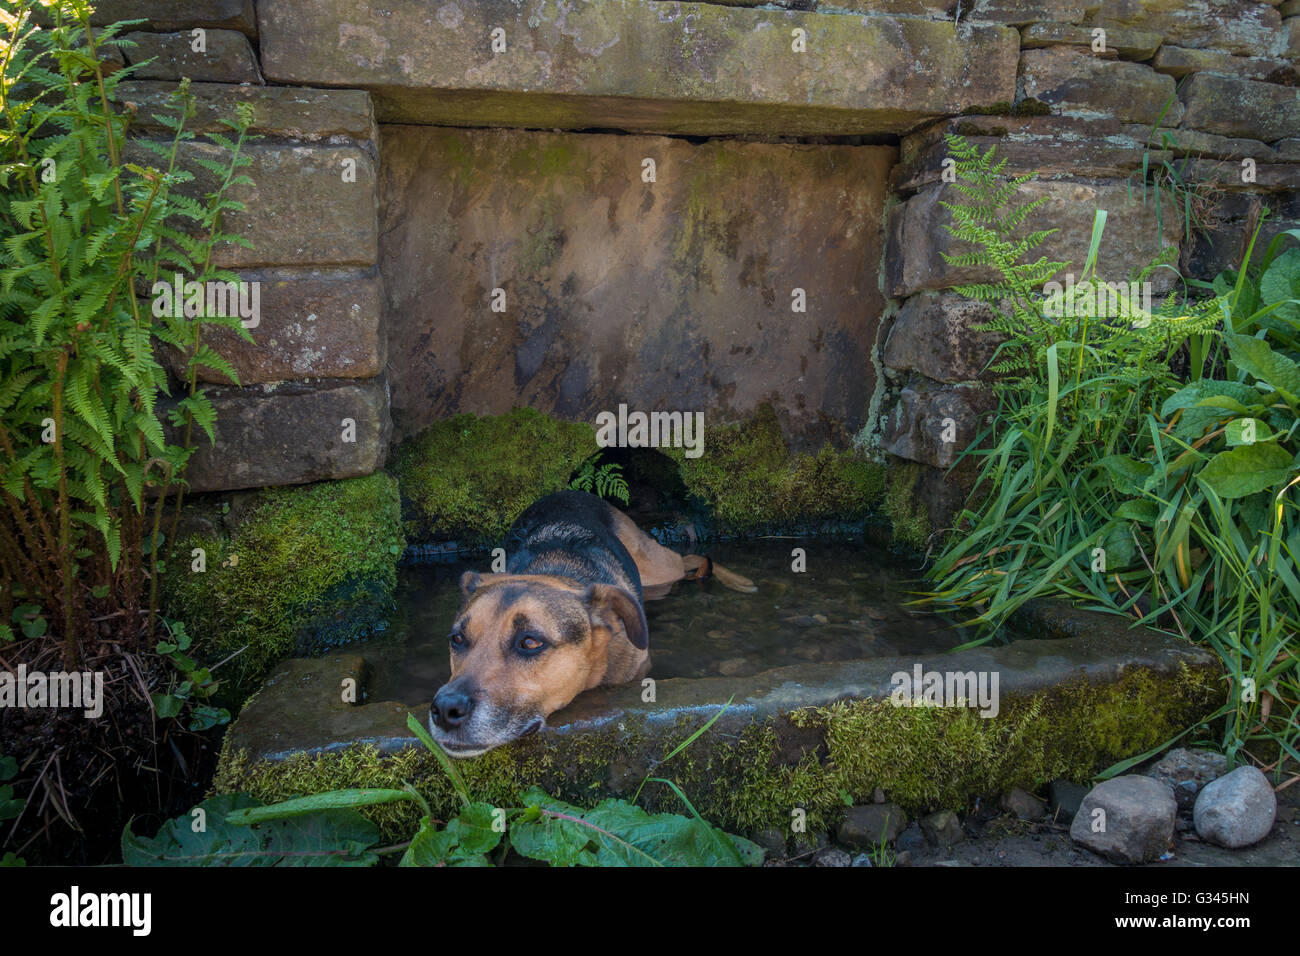 Dog cooling off in a stone water trough built into a wall, UK - Stock Image